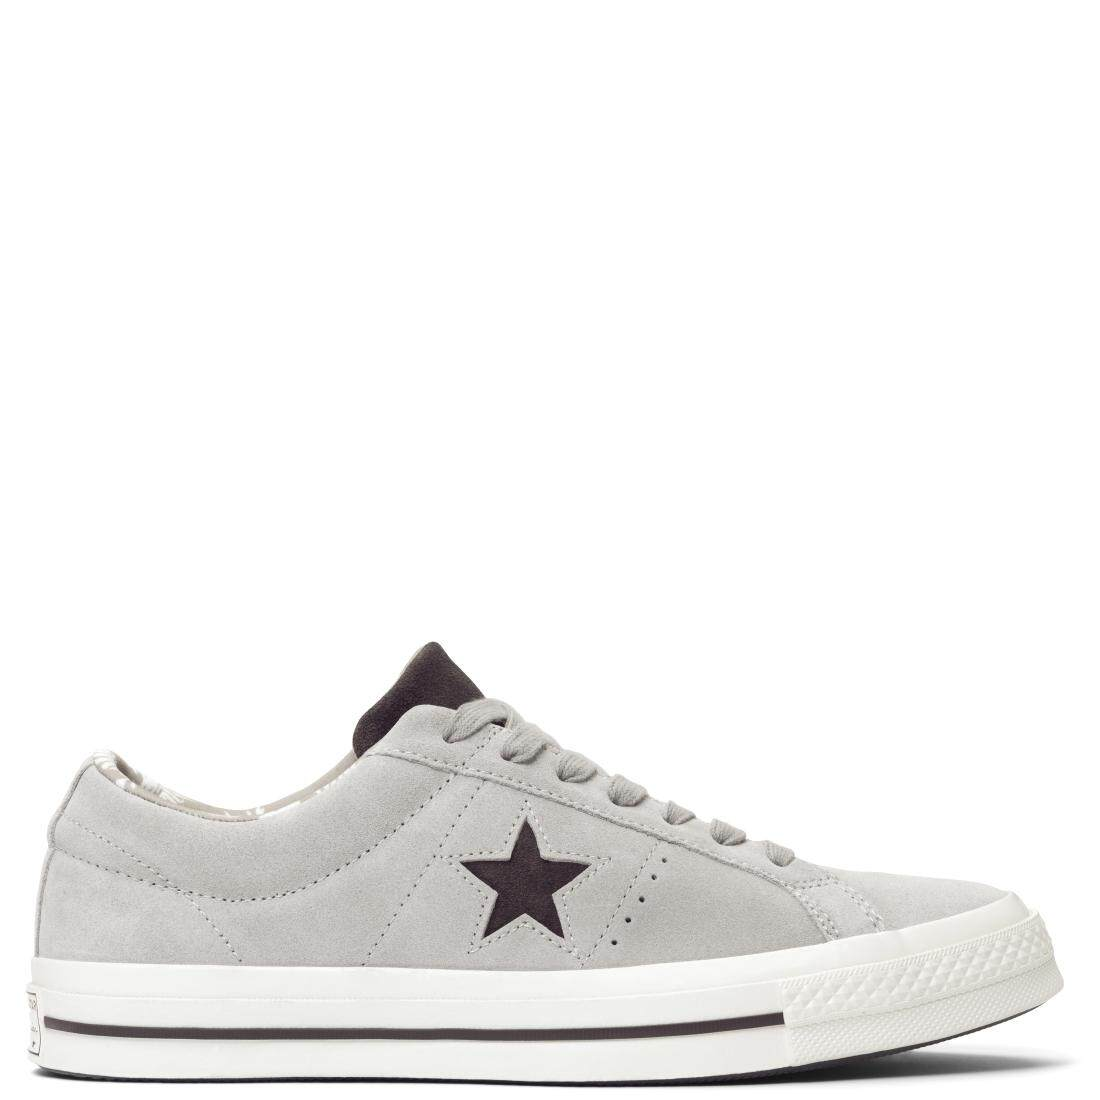 Shop Men s Shoes & Accessories From Converse Planet Sports on Source · CONVERSE ONE STAR OX PAPYRUS DARK CHOCOLATE EGRET 160586C